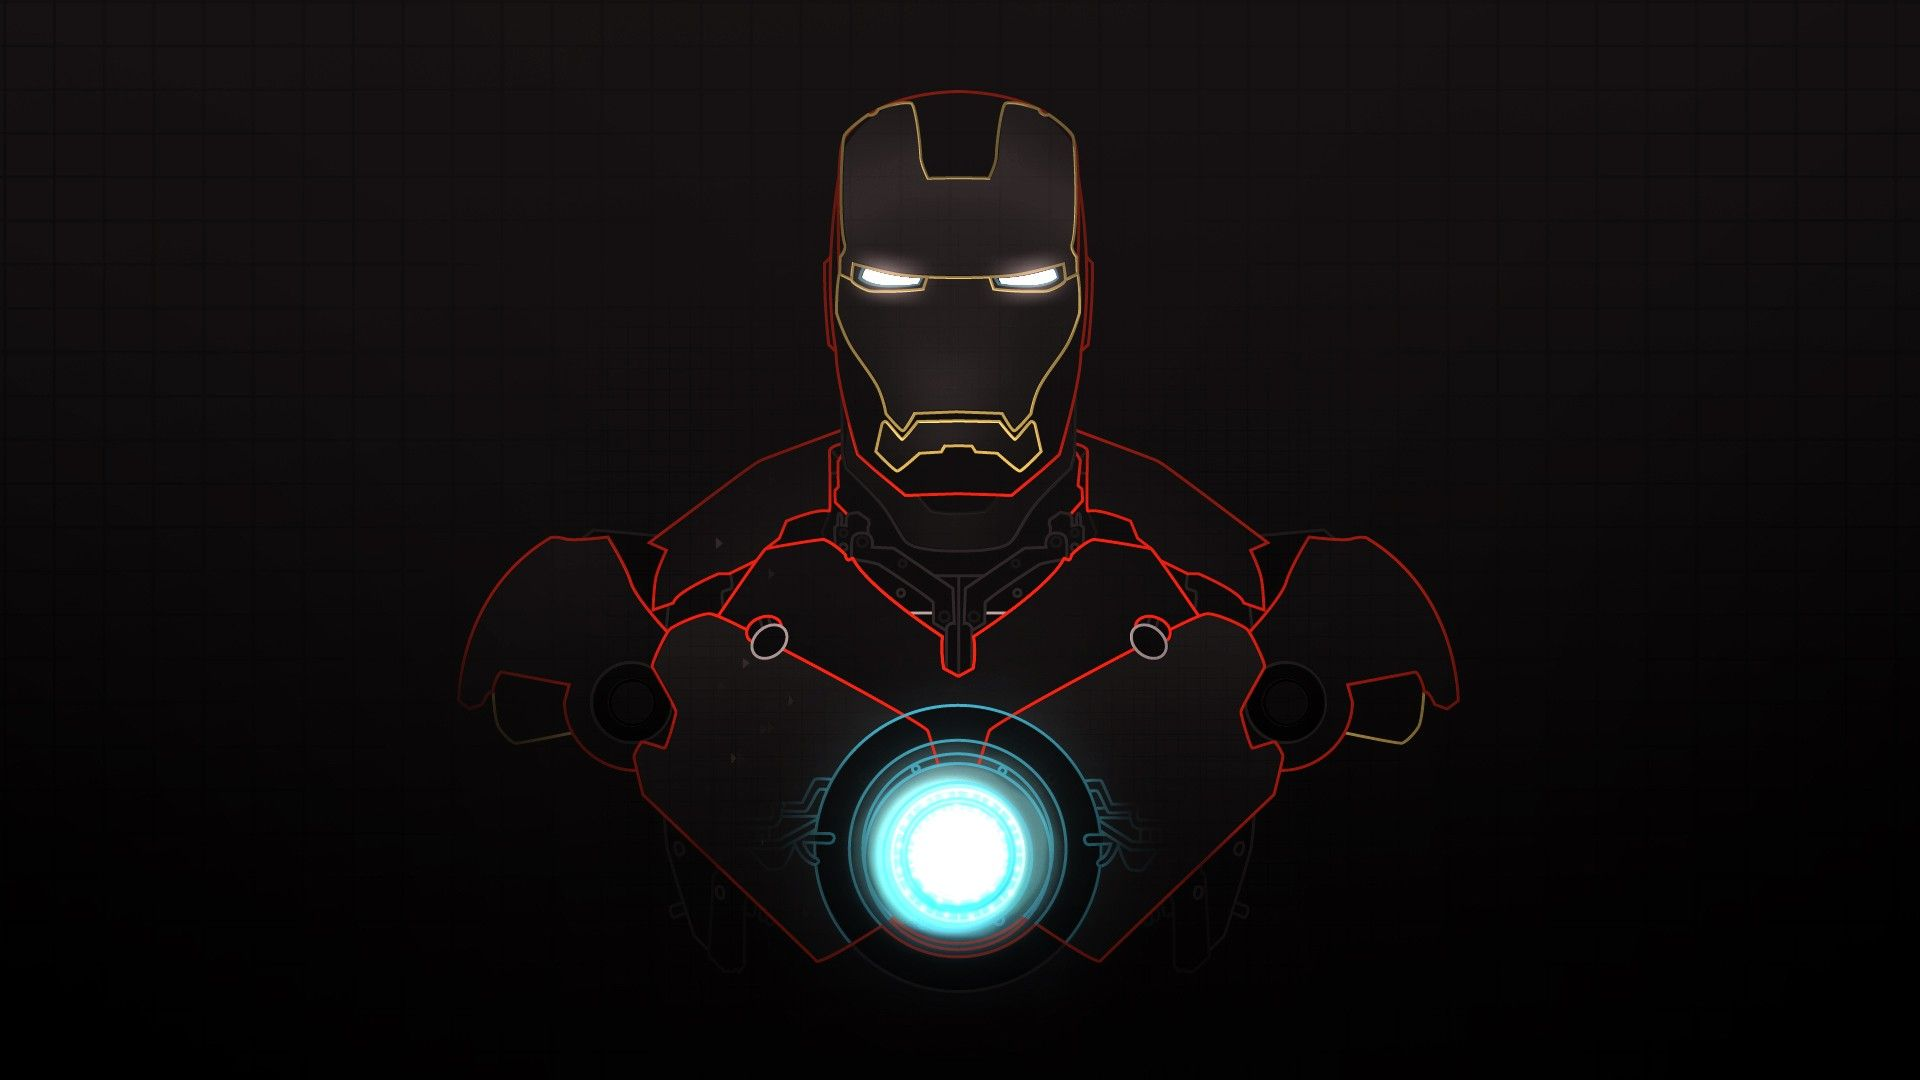 1920x1080 Iron Man Vector Artwork Marvel Comics Graphic Art 1920x1080